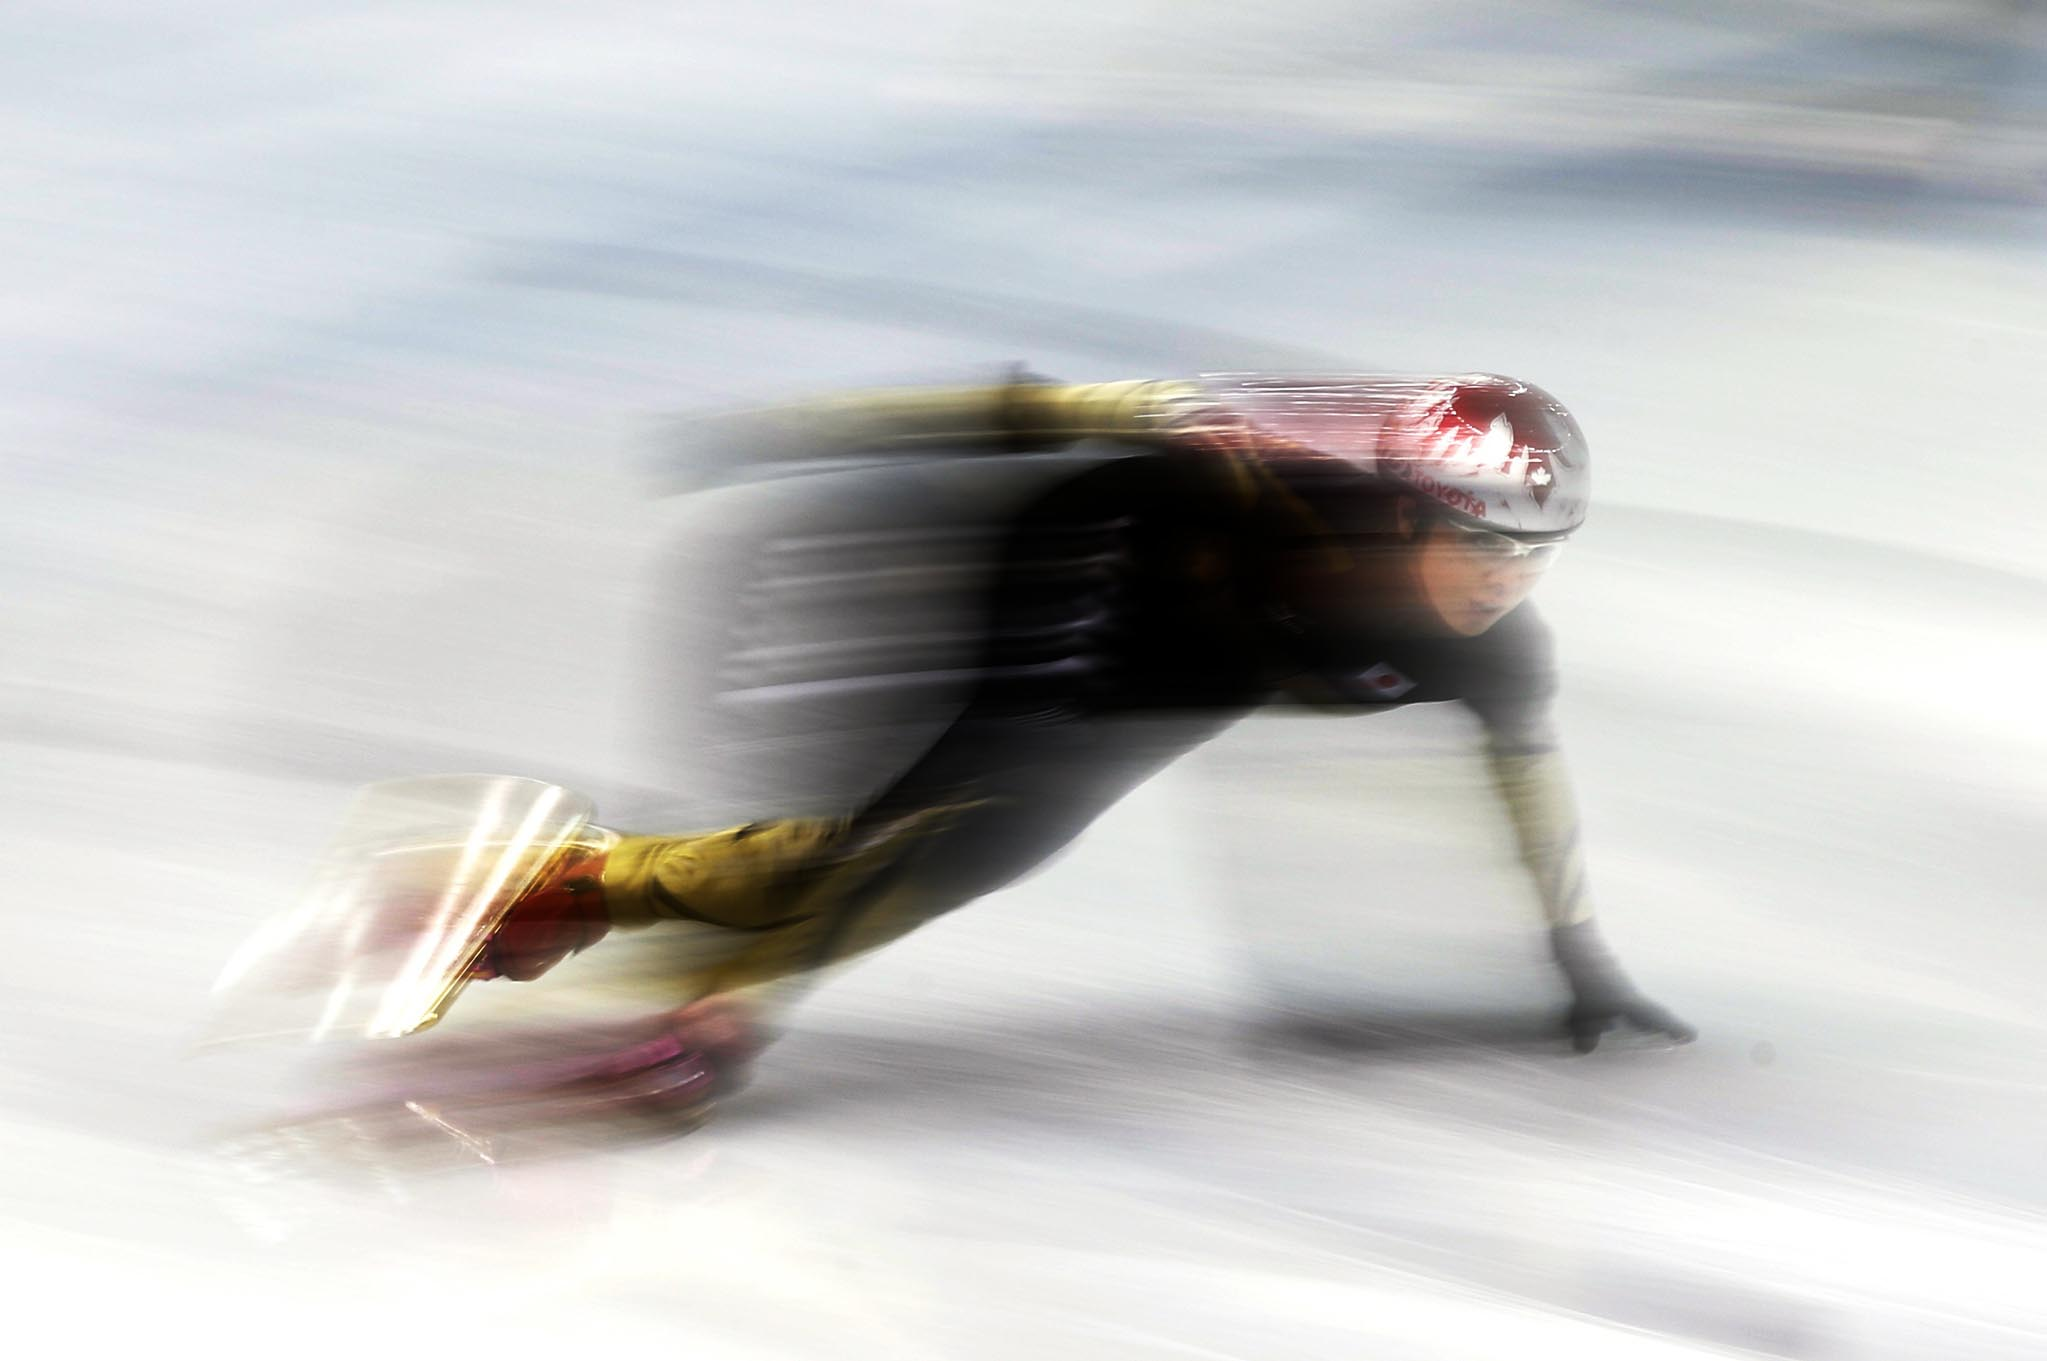 A member of Japan's short track speed skating team skates during a training session in preparation for the 2014 Sochi Winter Olympics at the Iceberg Skating Palace